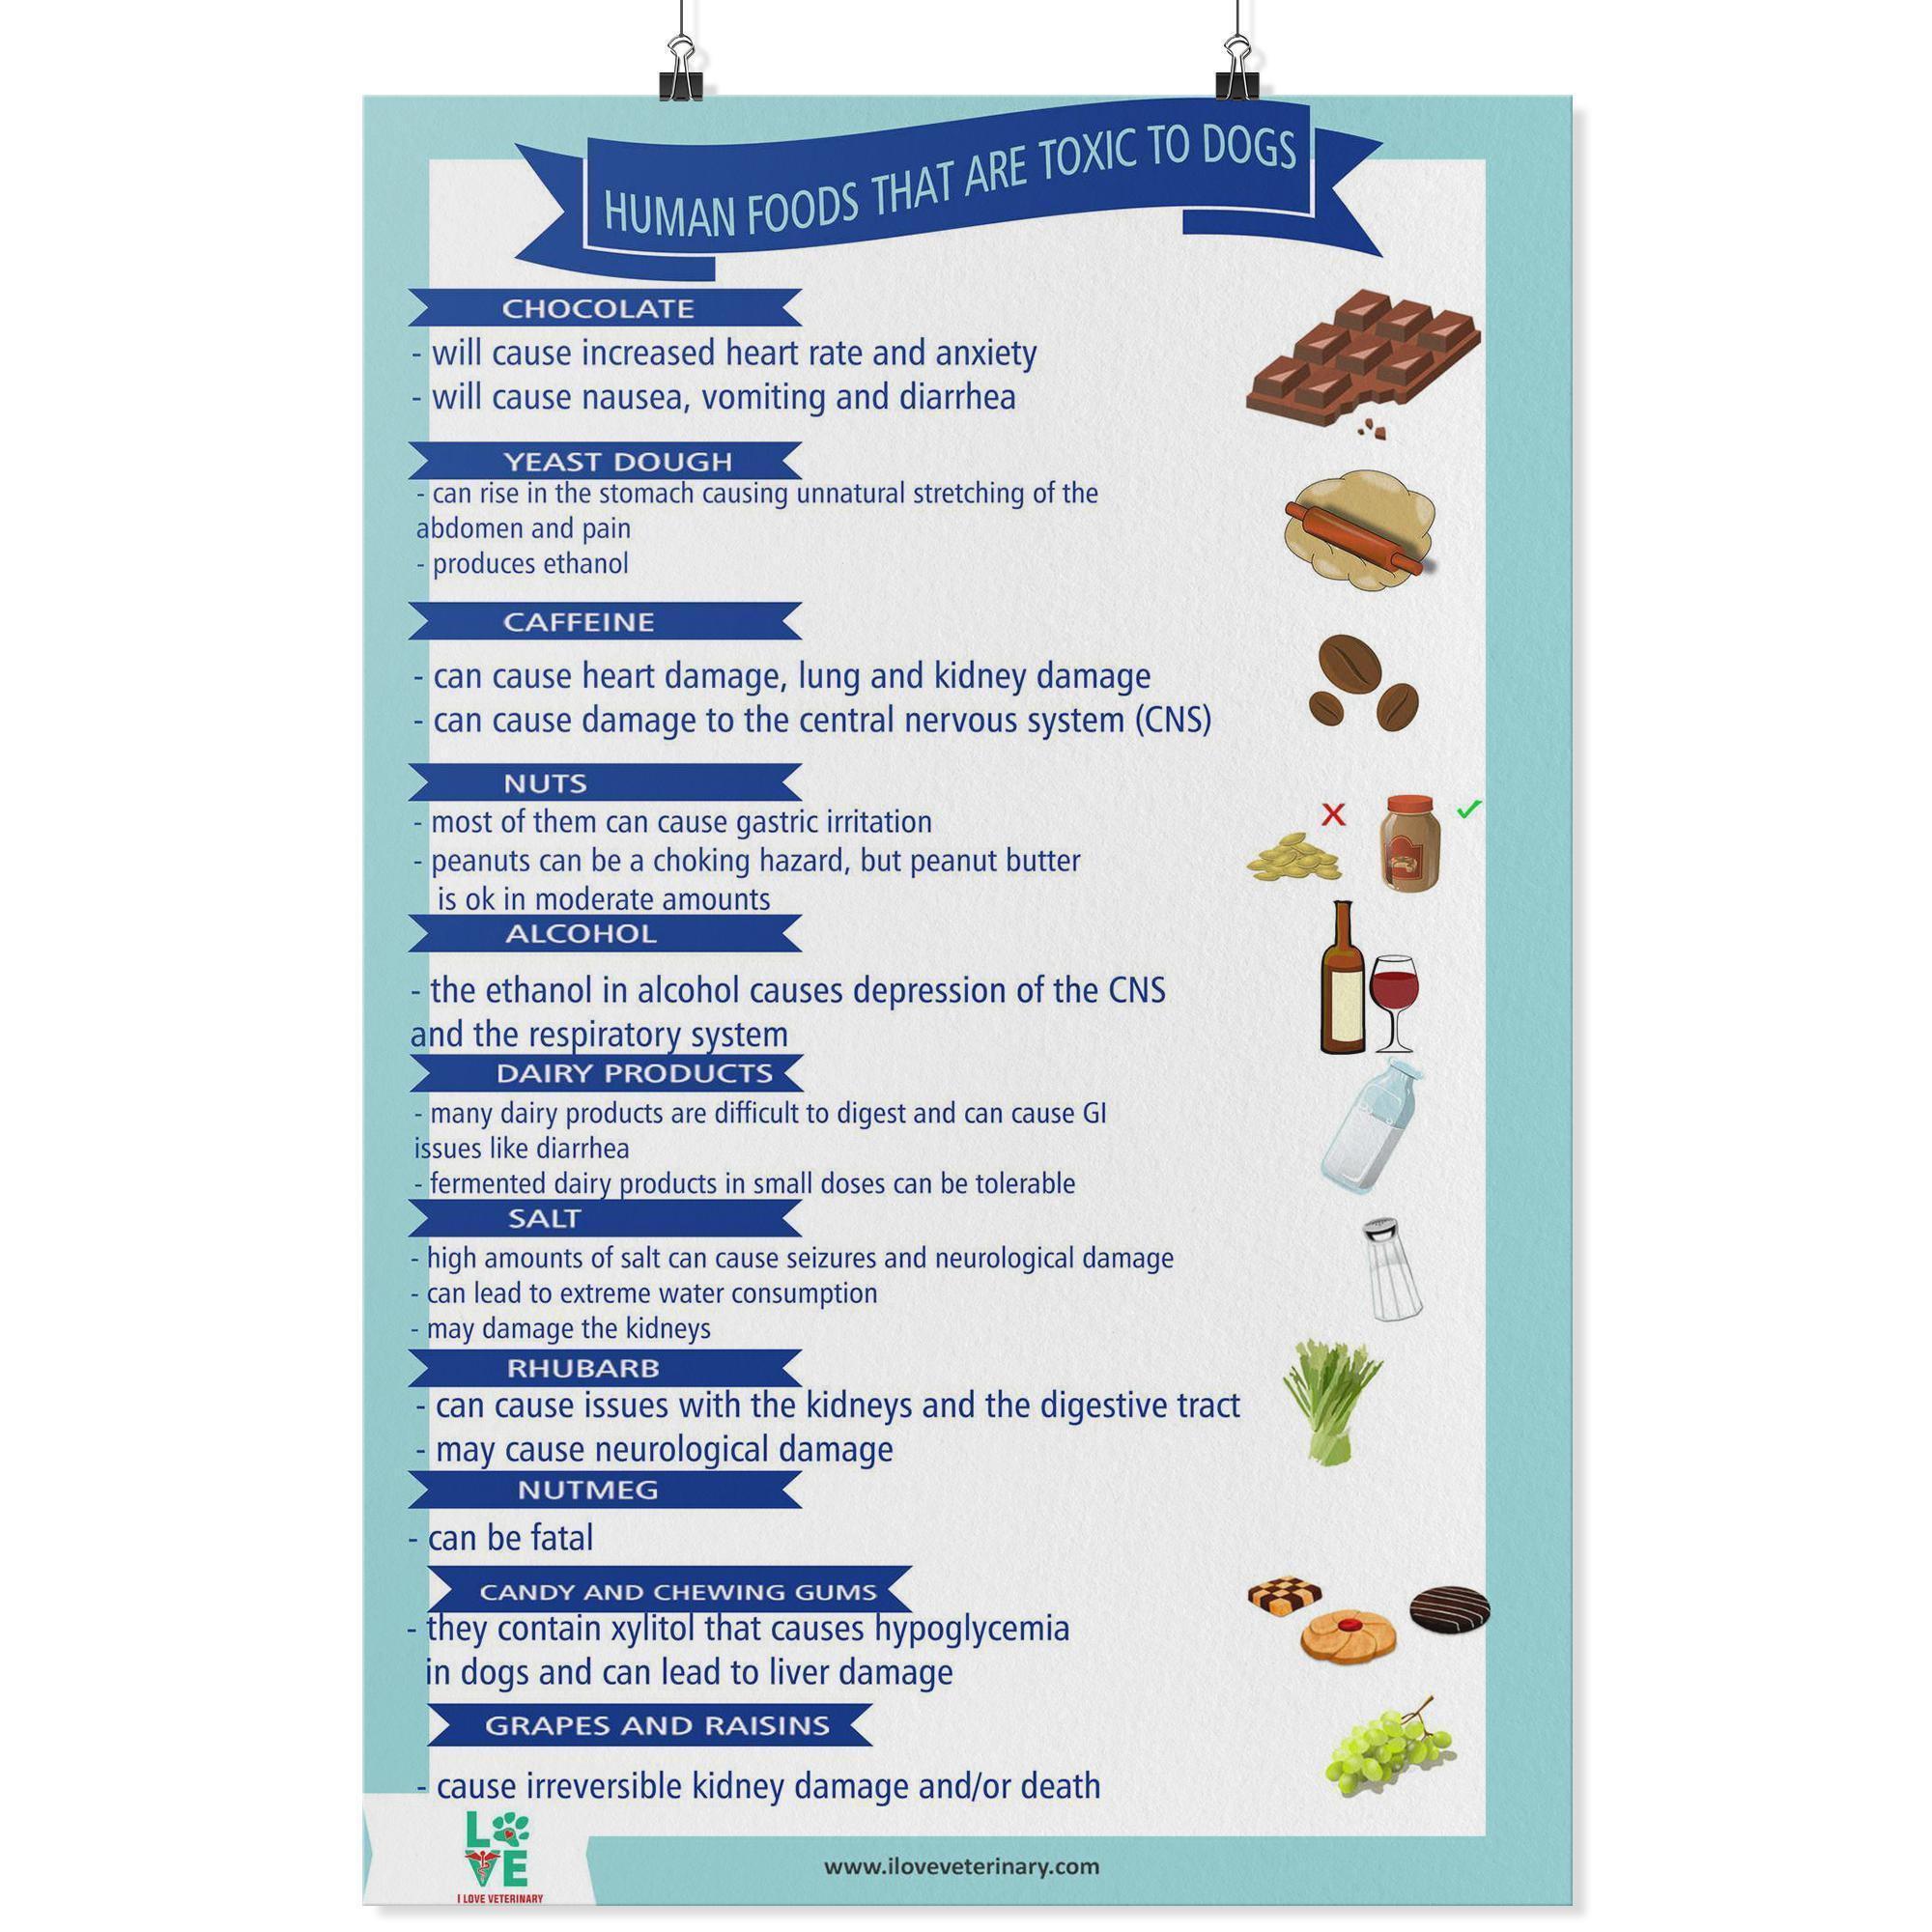 Human Foods that are Toxic to Pets Poster